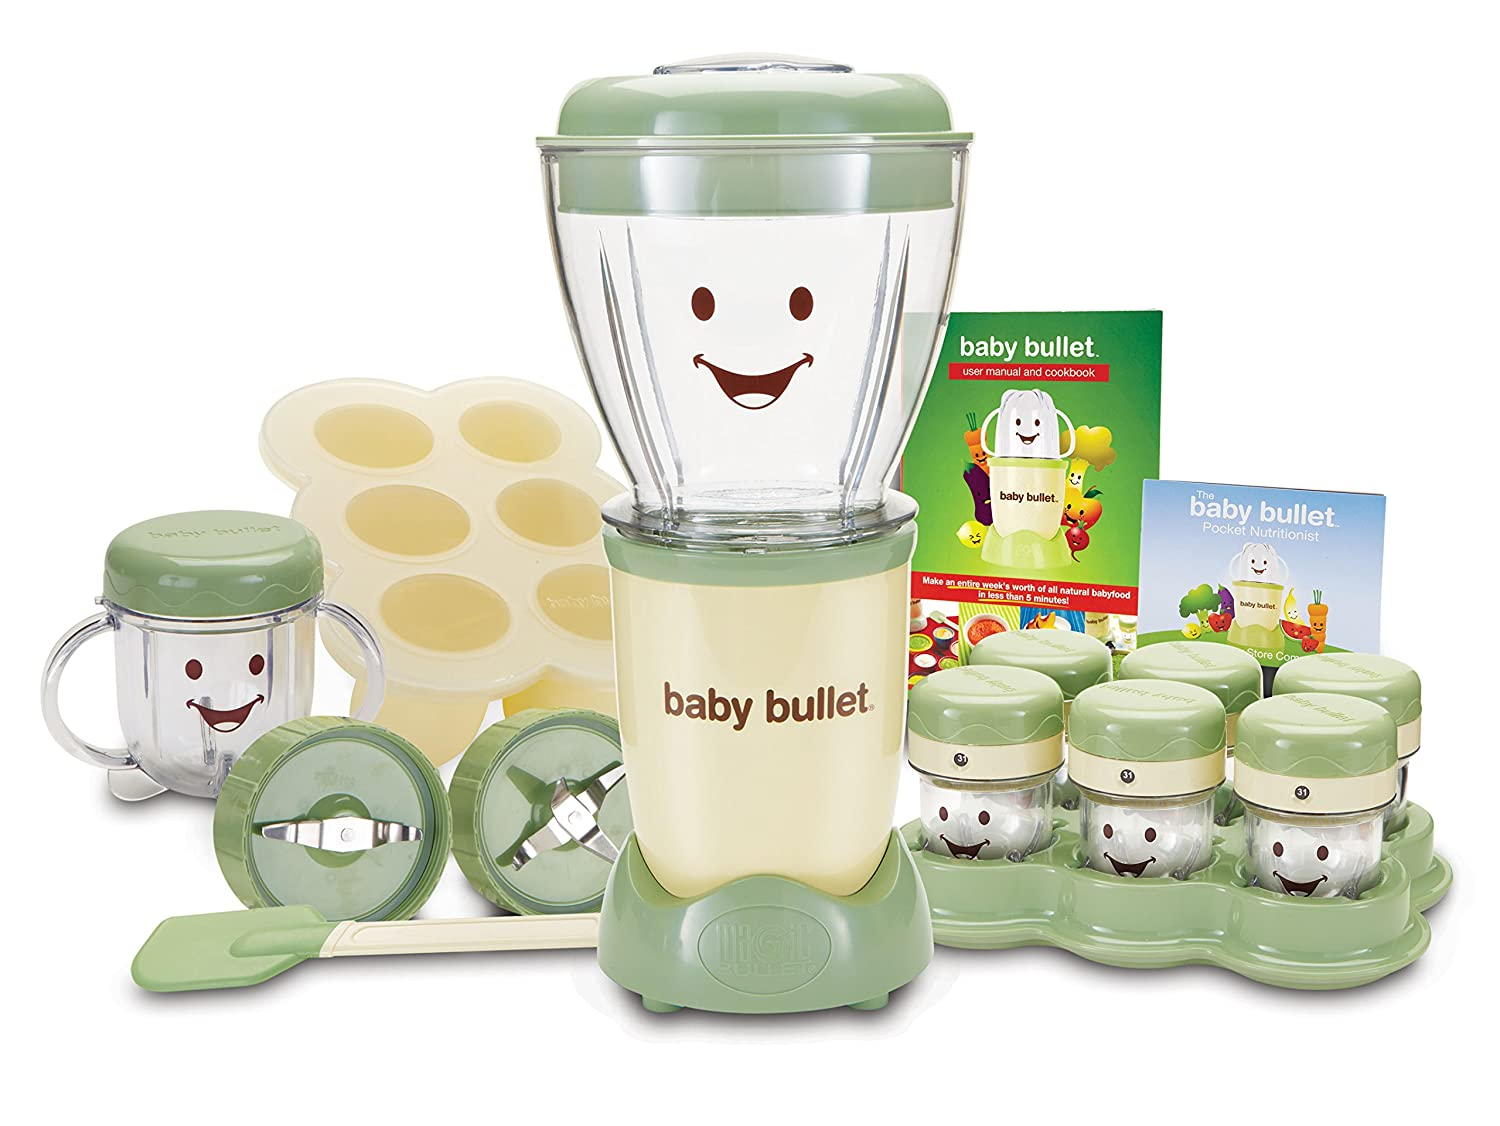 Top 6 Best Food Processors for Baby Food Reviews in 2020 5